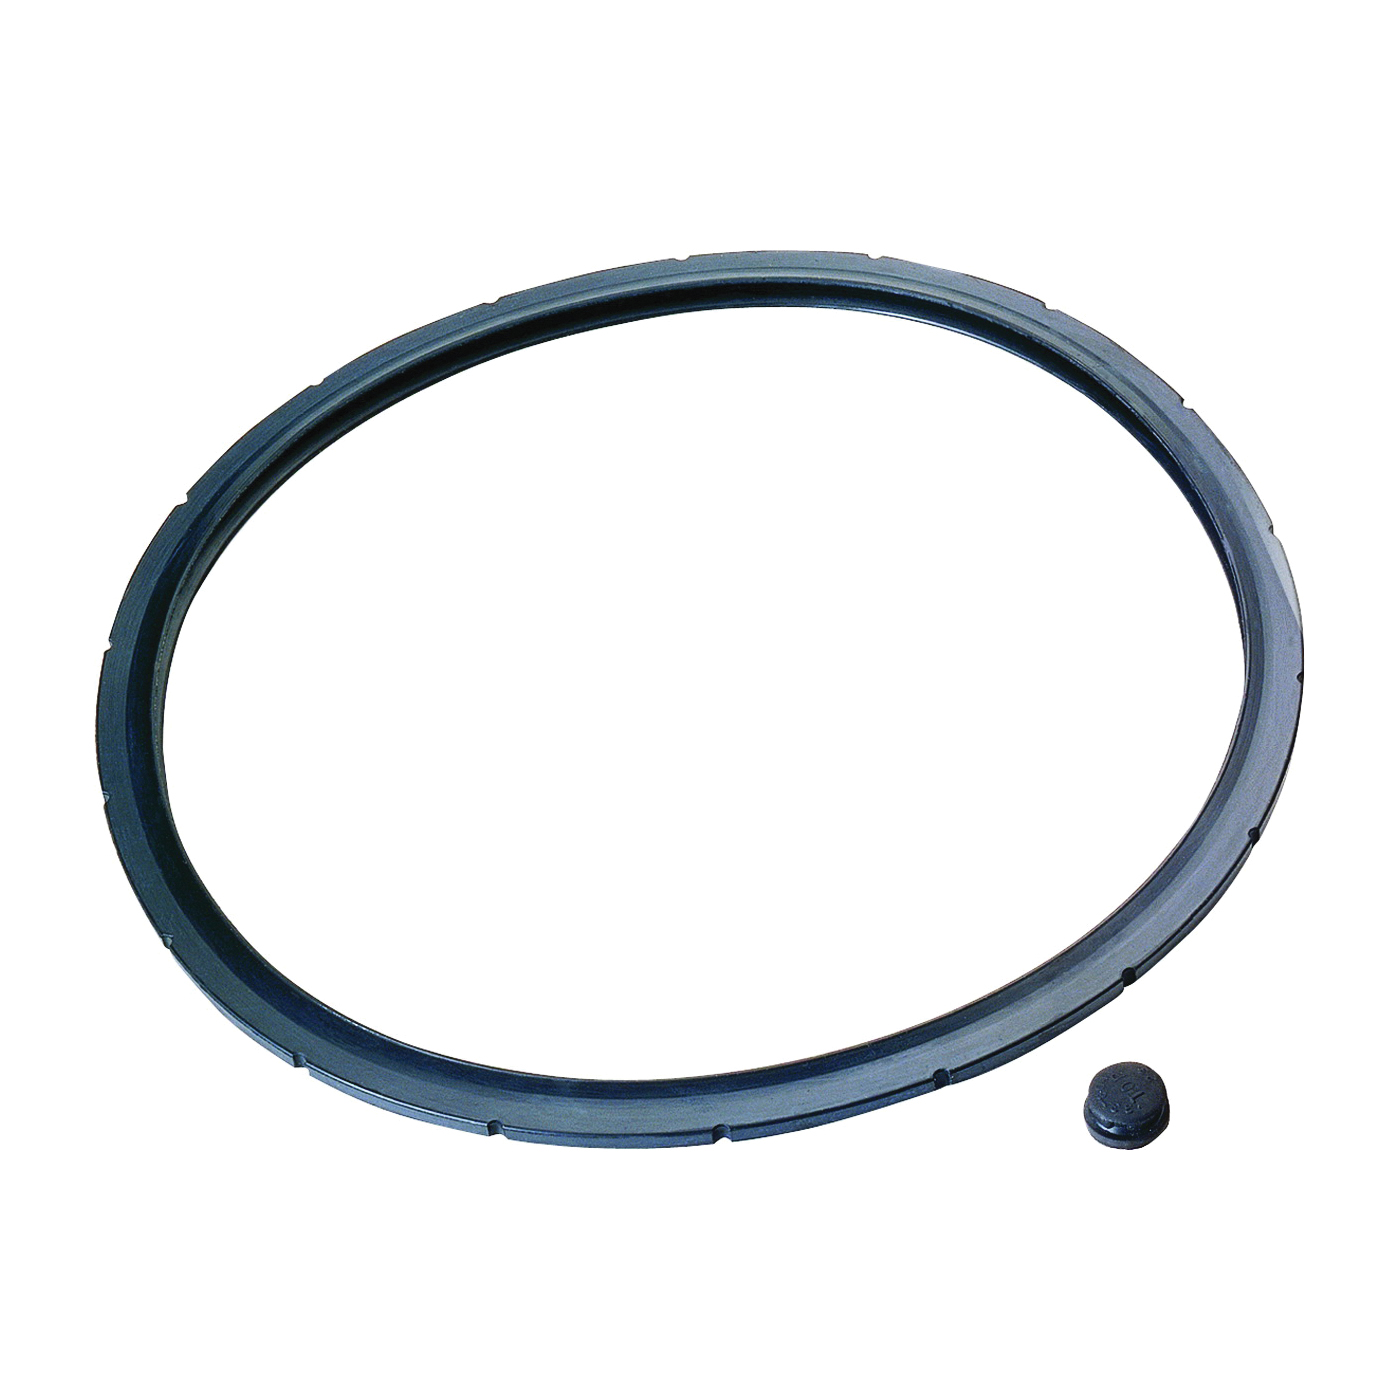 Picture of Presto 09903 Pressure Cooker Sealing Ring